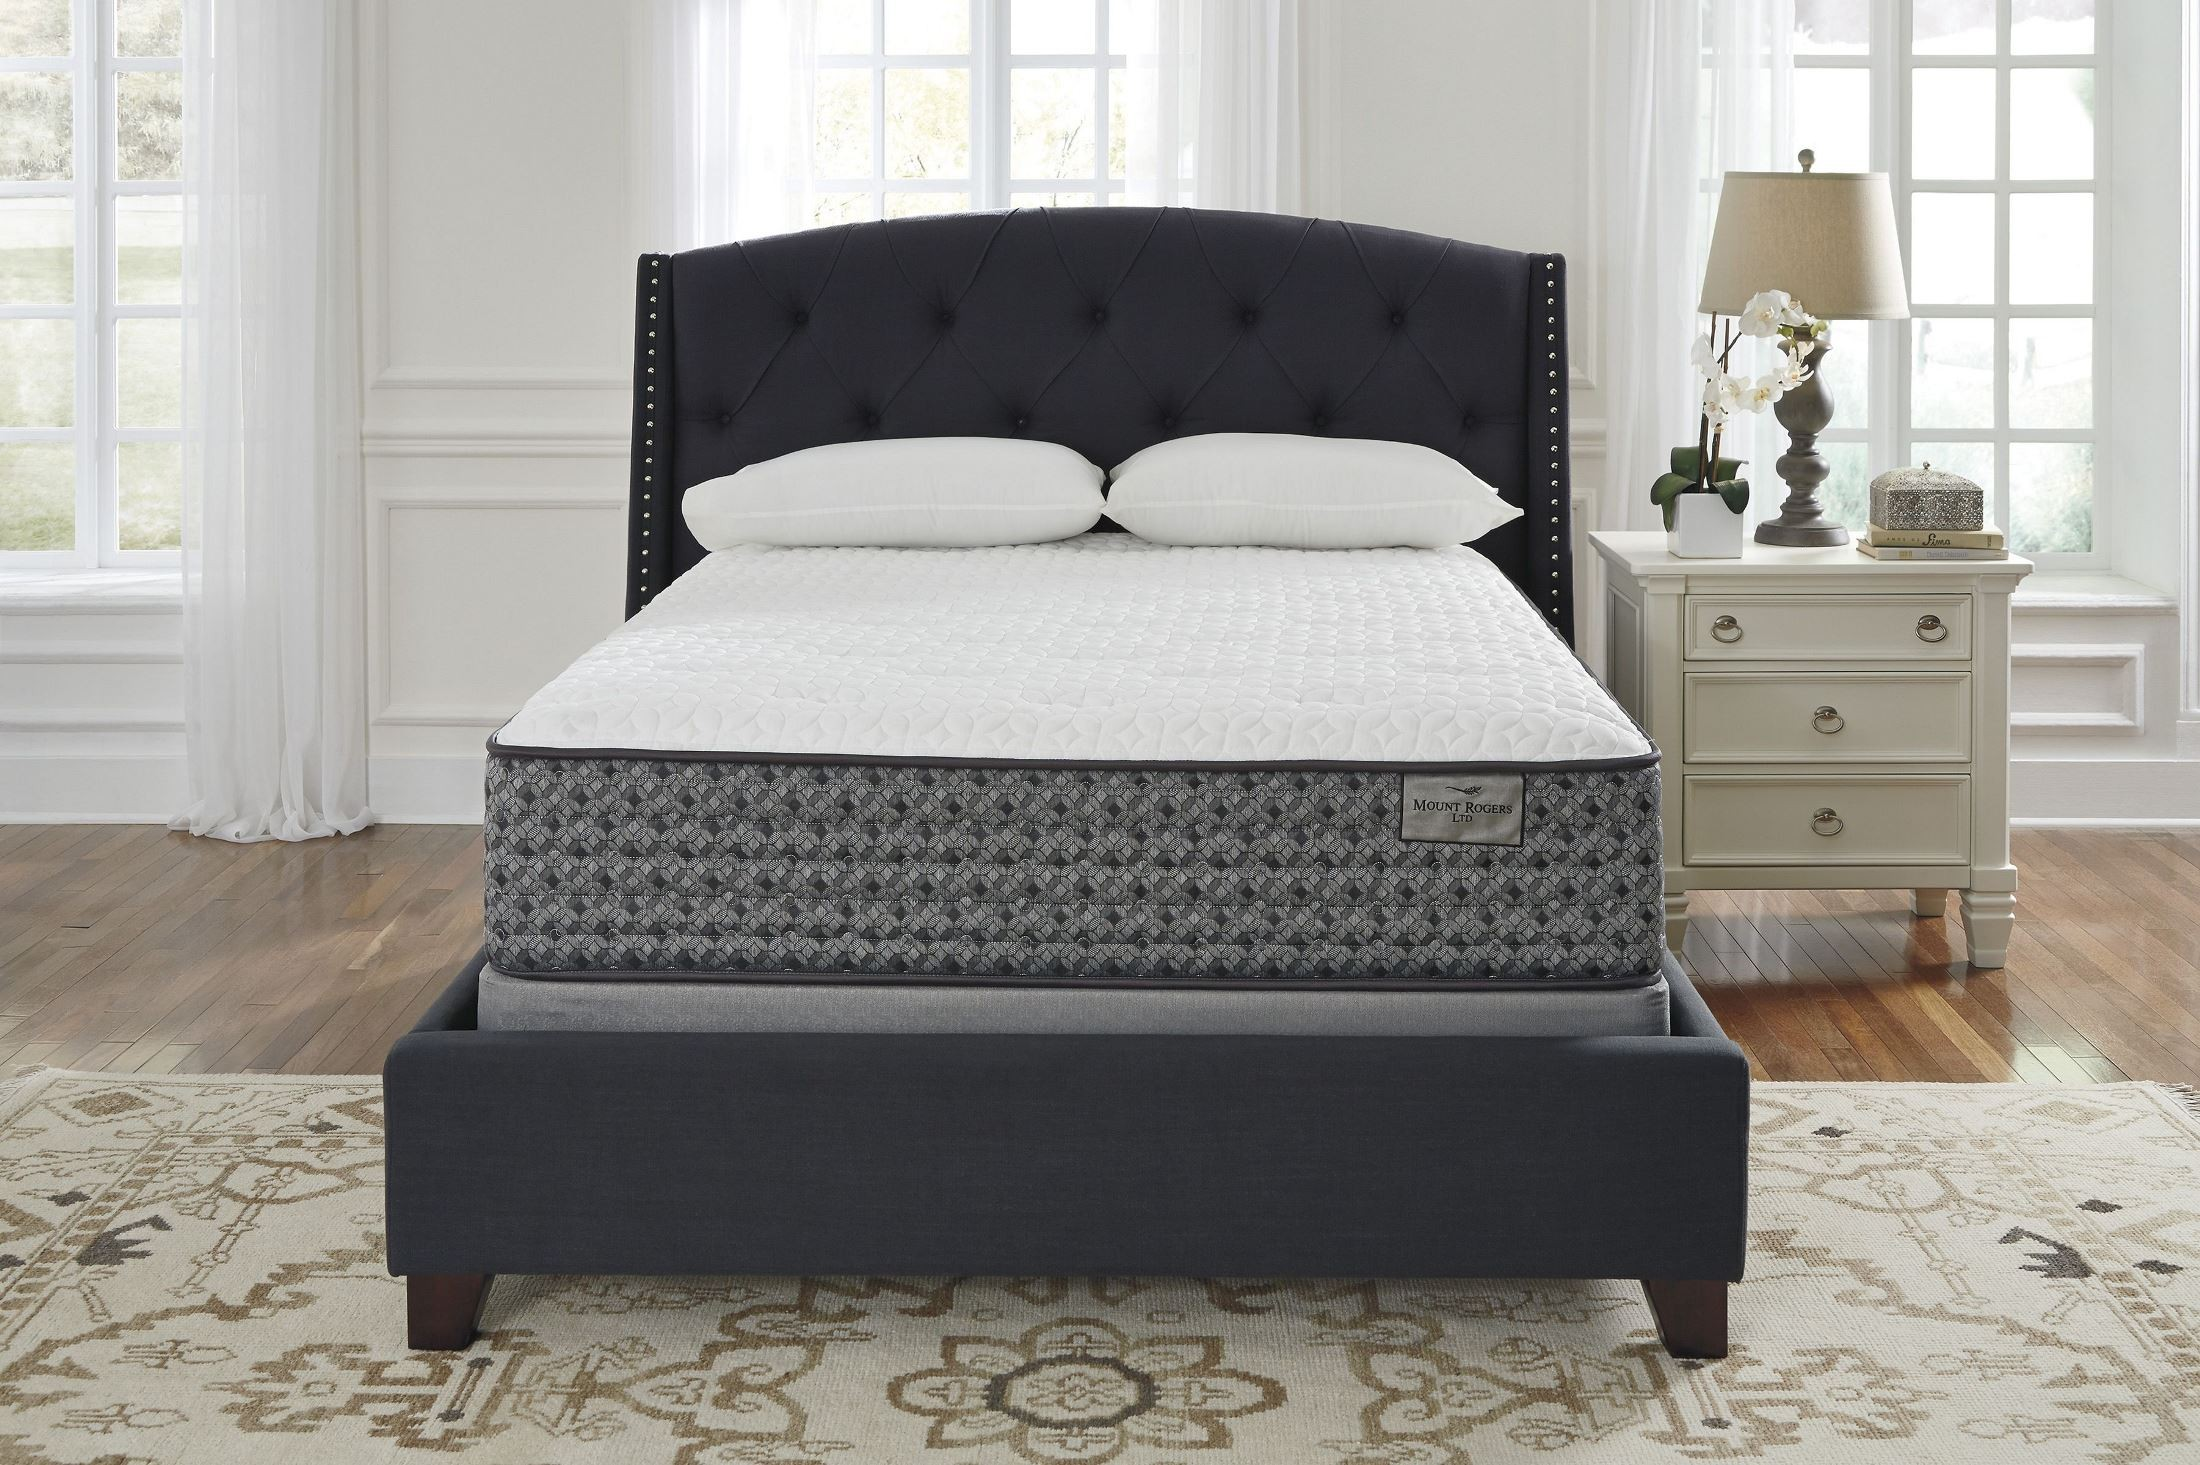 Mt Rogers Firm White Cal King Mattress on Firm Queen Mattress Foundation With Mt Rogers